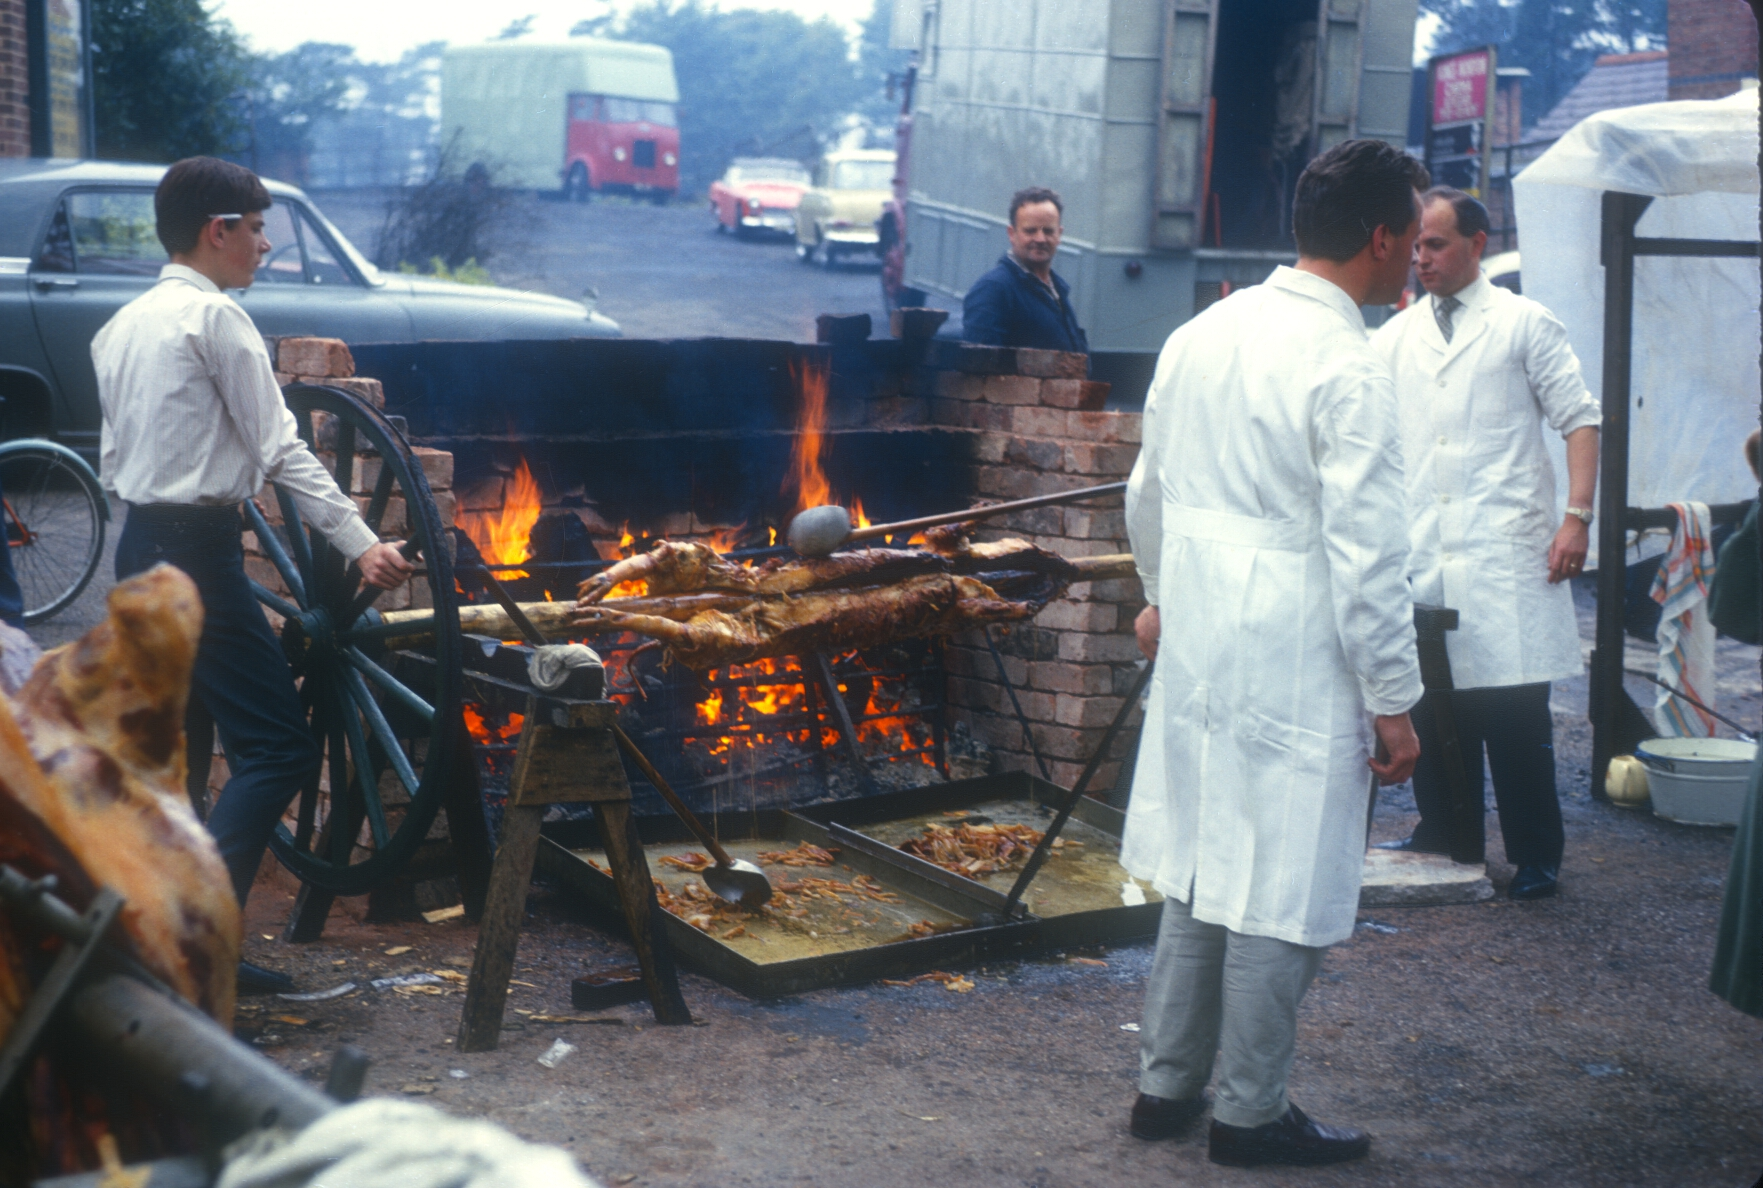 Kings Norton, The Mop, Ox & Pig Roasting. 7th October 1963 (2)